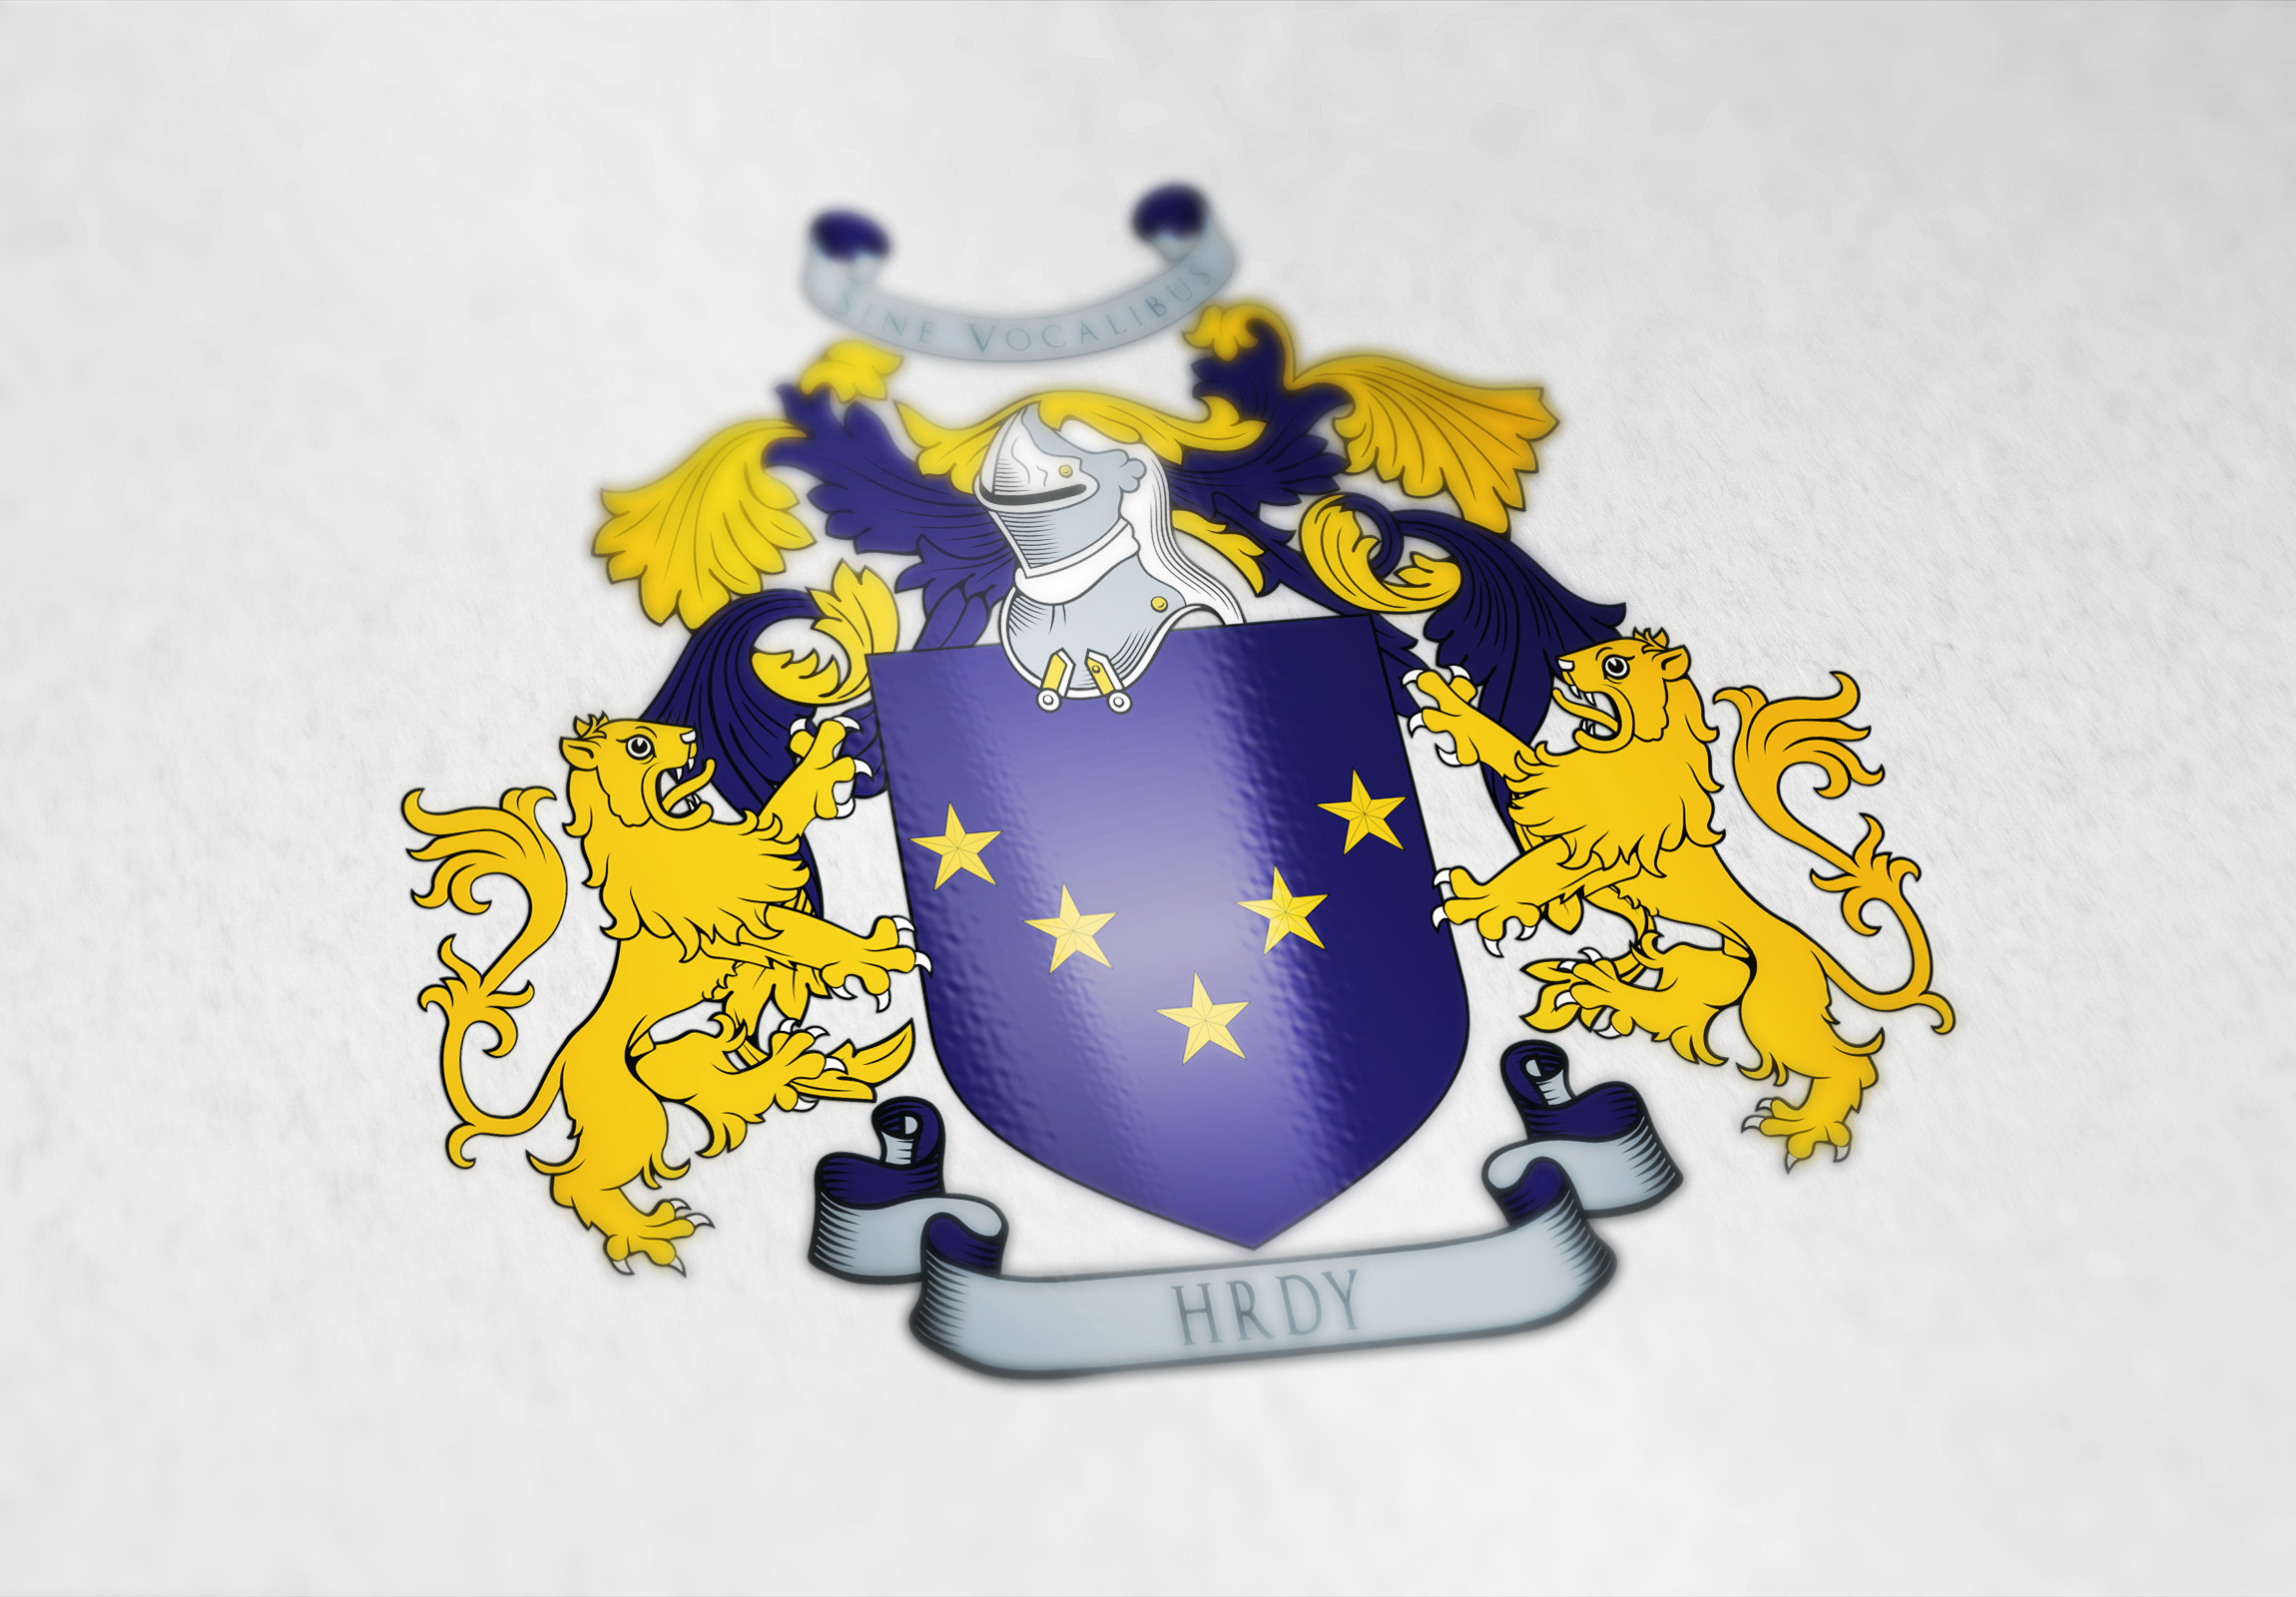 Coat of arms designed for the Hrdy Czech-American family